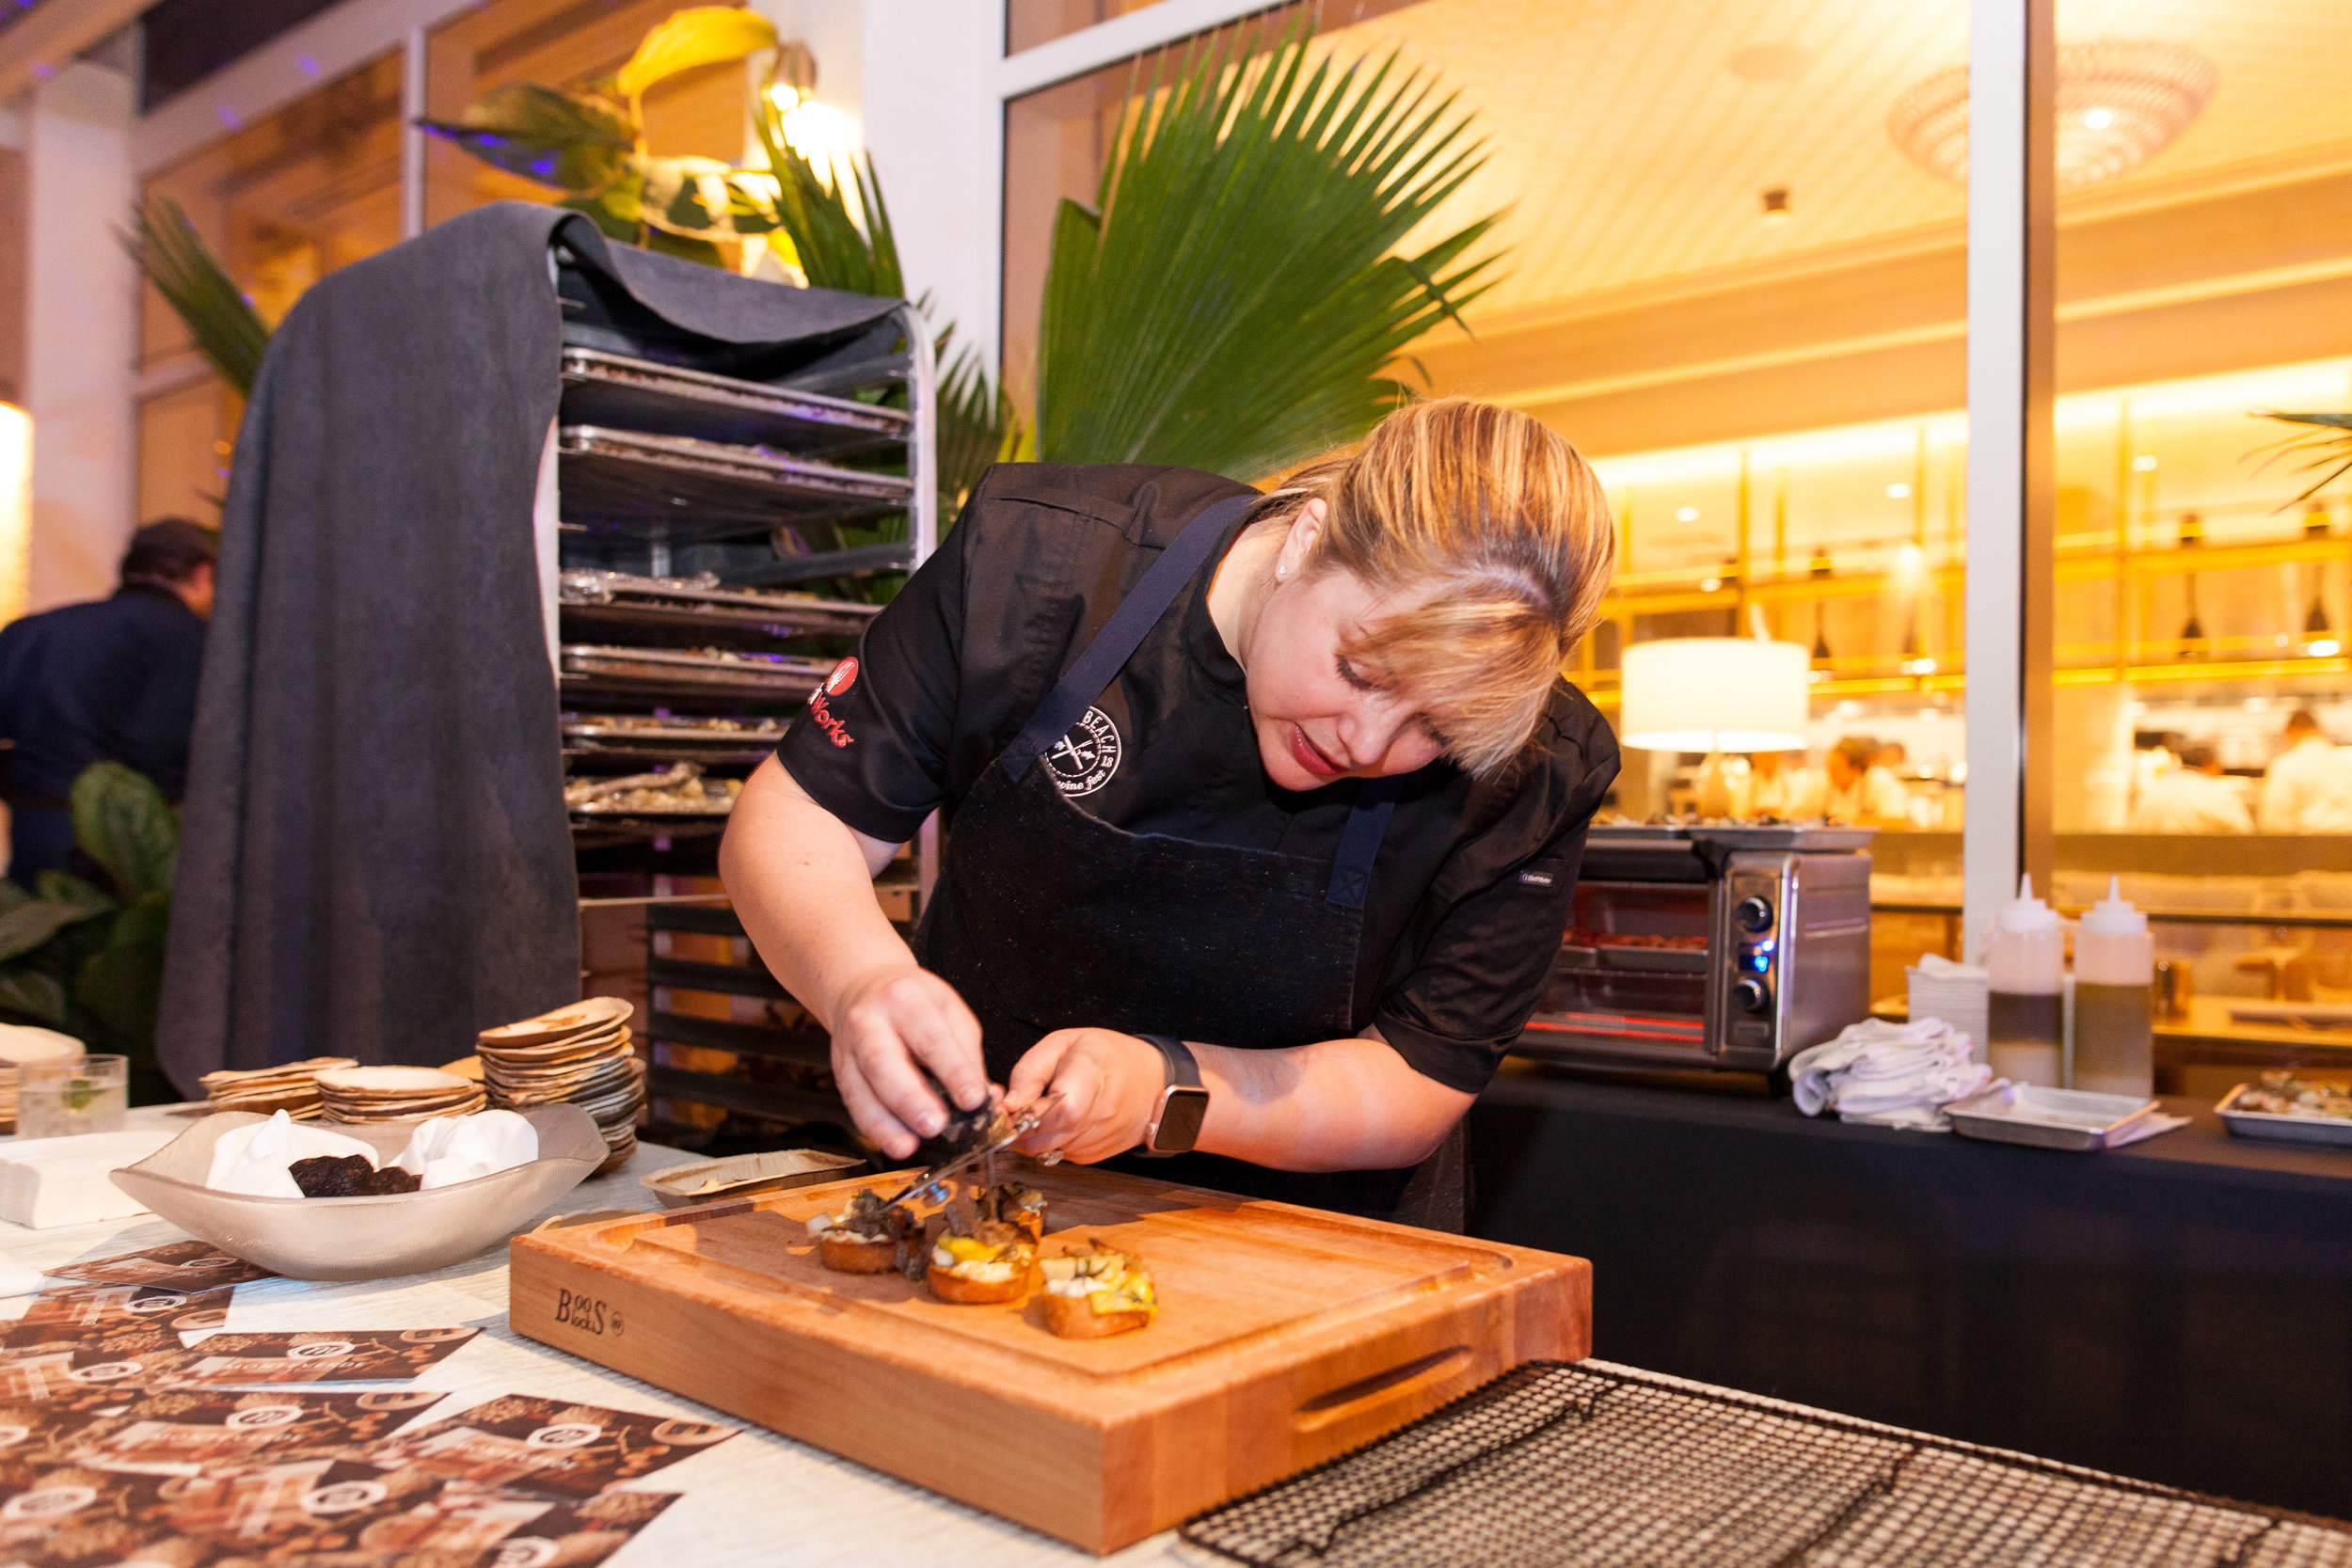 four seasons palm beach top chef indulge party-4.jpg